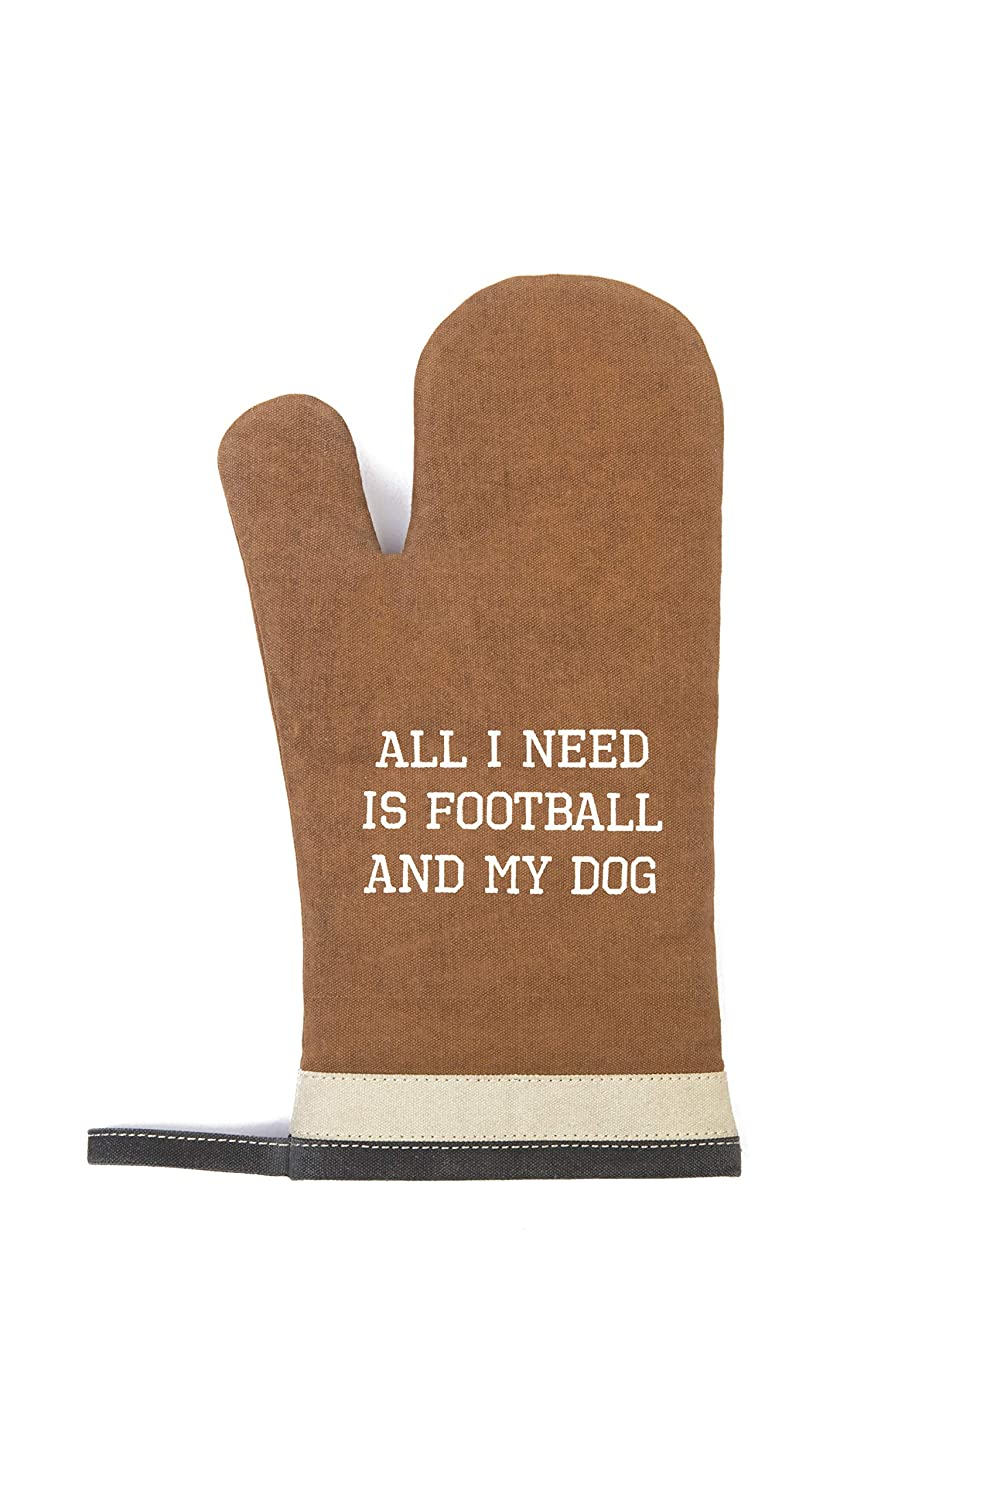 My Dog Oven mitt Humor Oven-Mitts for Men/Women Birthday Christmas Thanksgiving Gifts for Mom/Dad Husband/Wife Teachers Gift Nurses Gift Grilling BBQ Baking